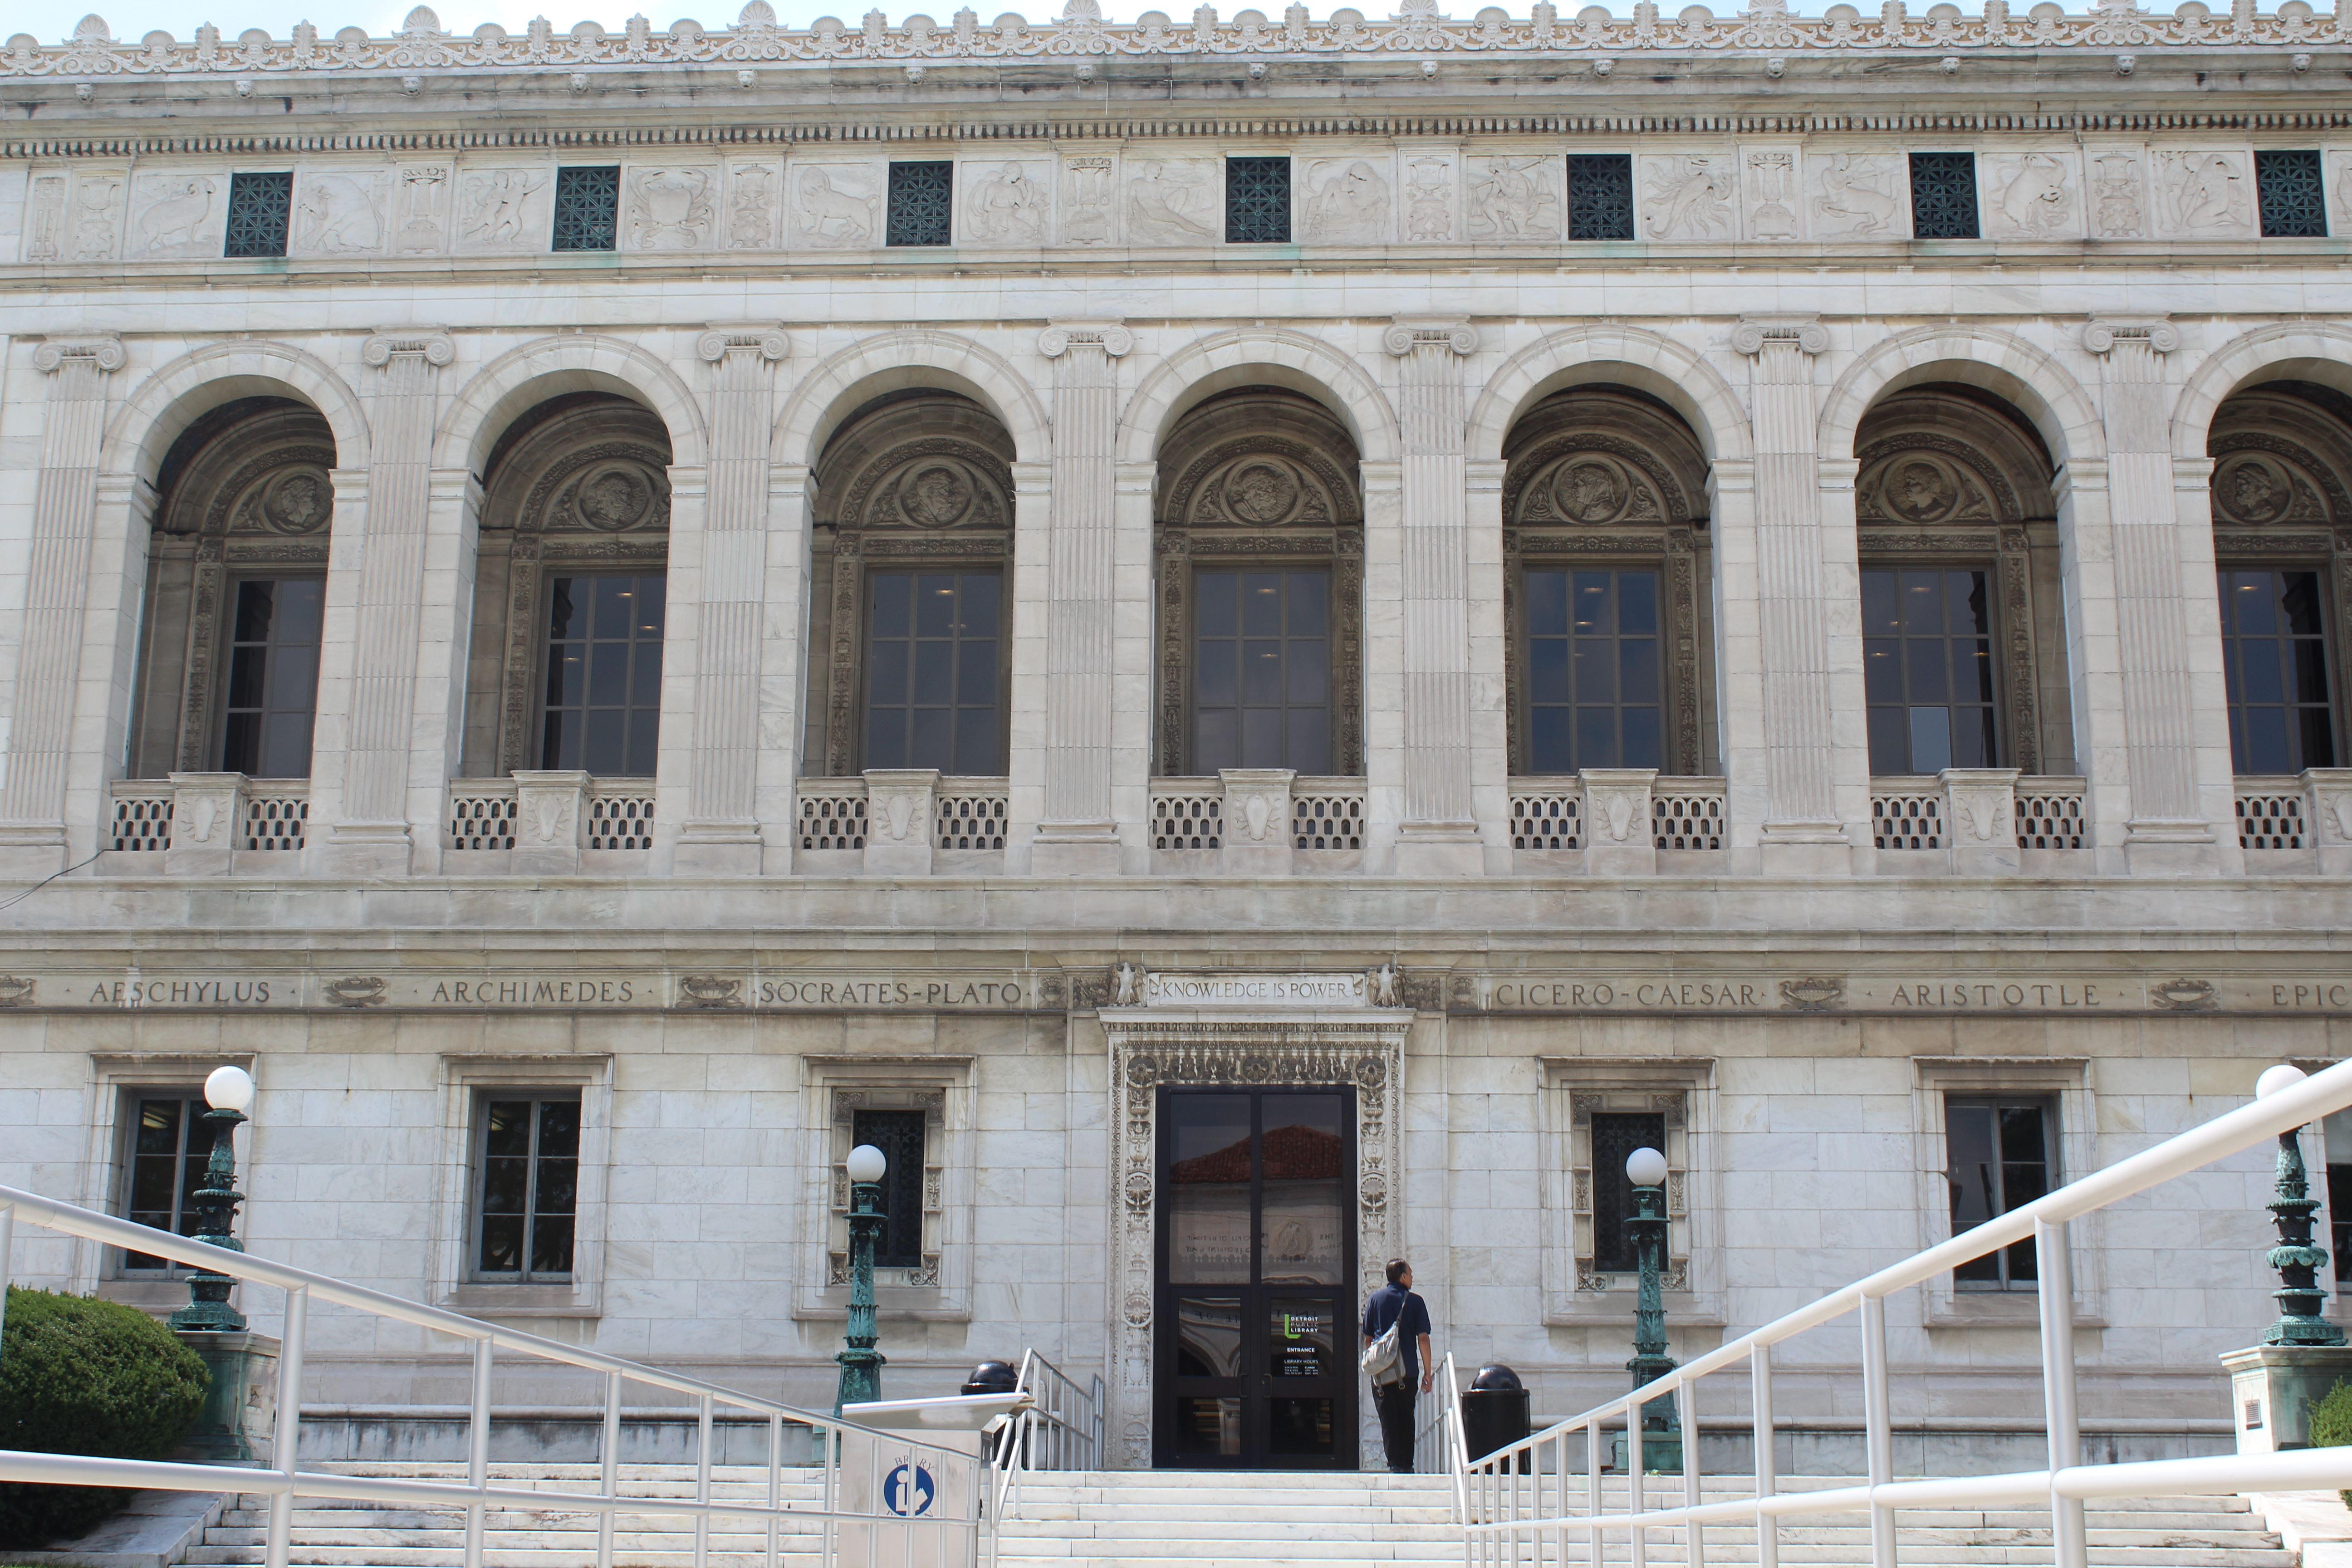 Photo of outside of main branch of the Detroit Public Library